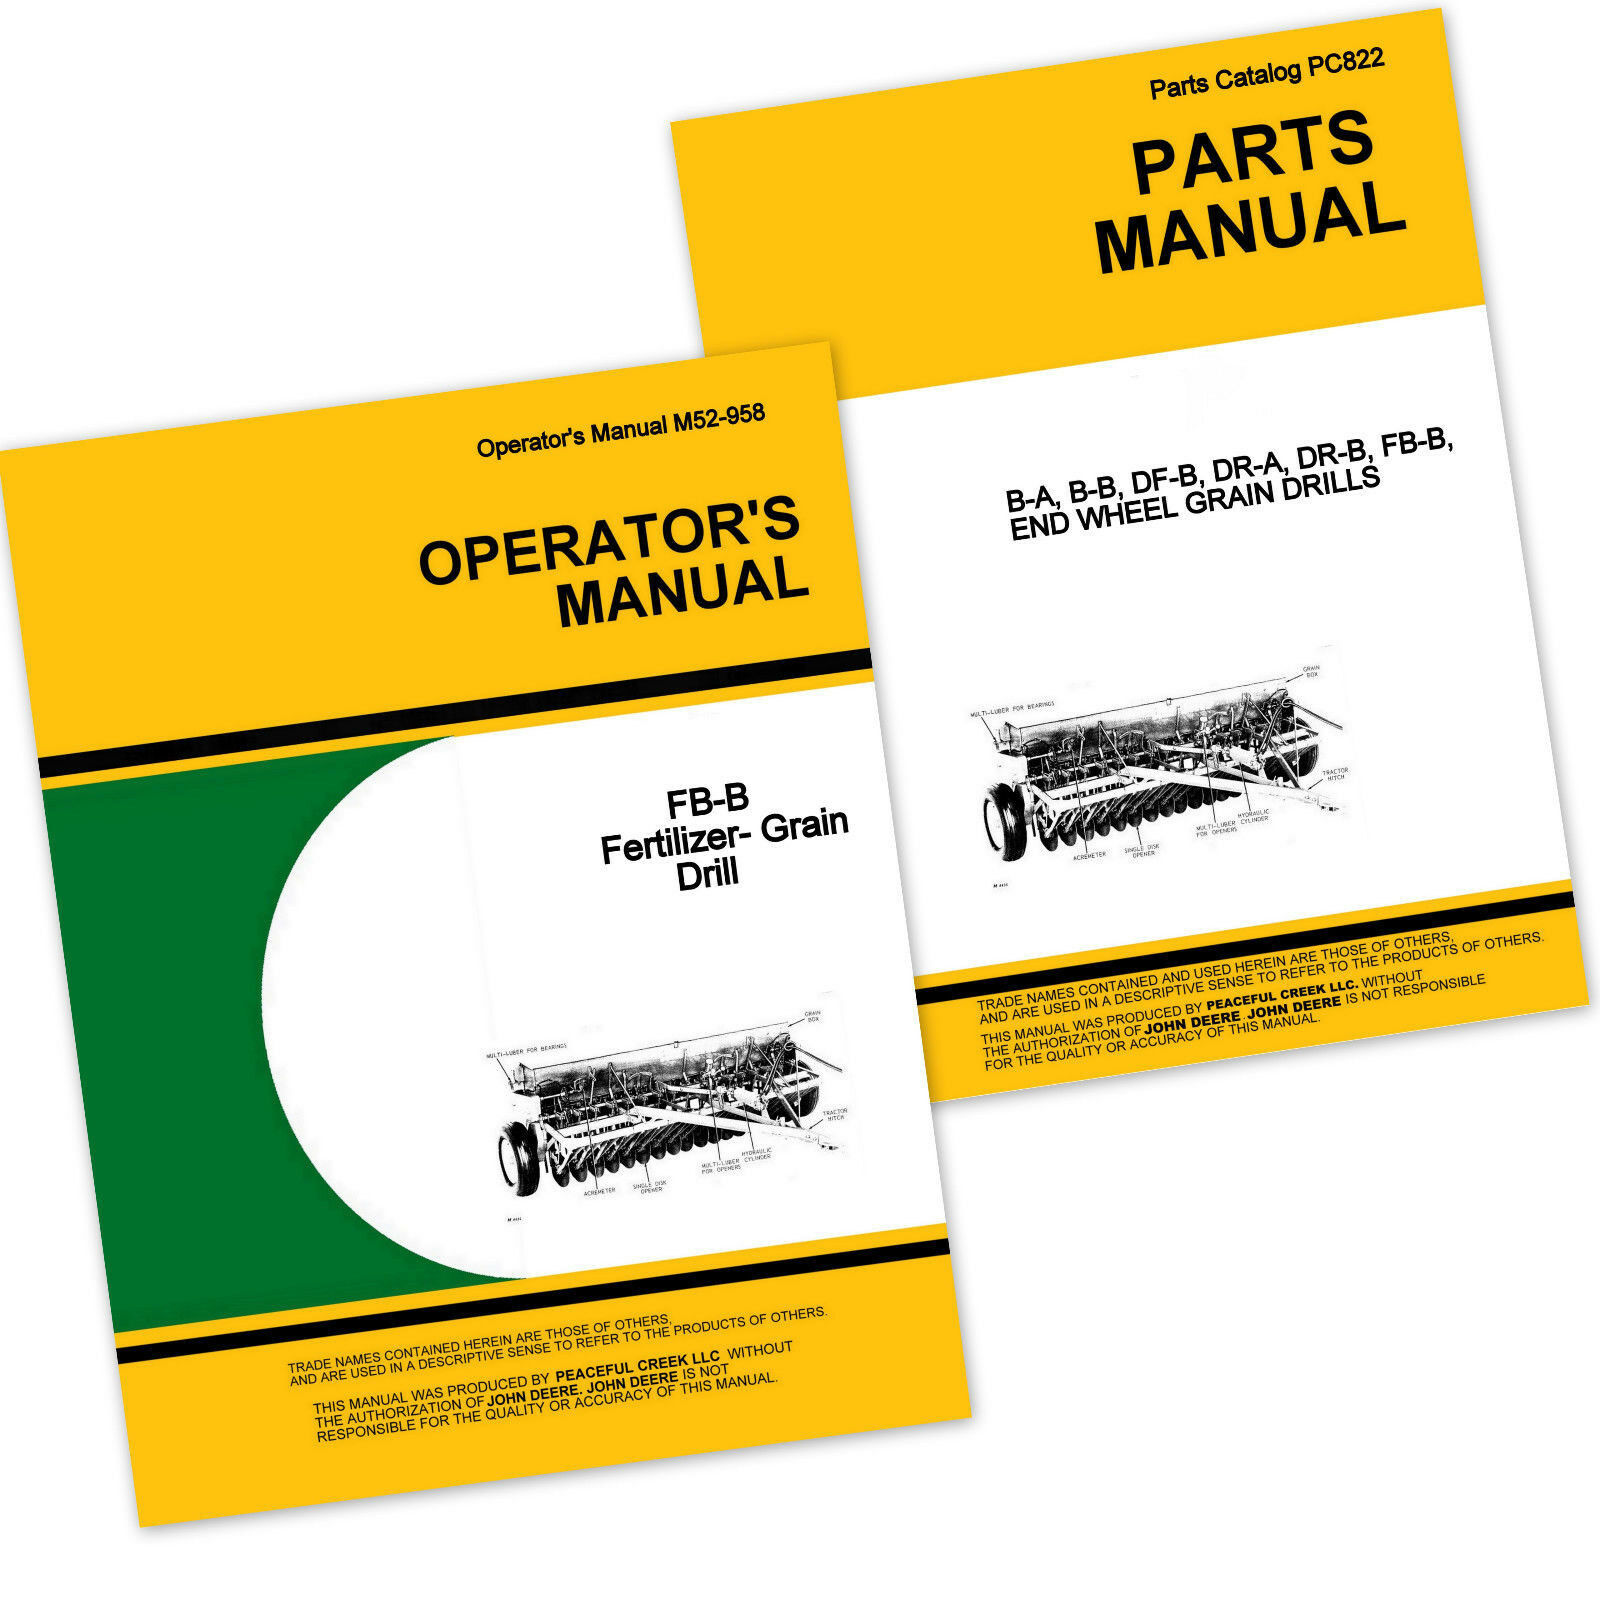 Operator Parts Manual For John Deere Fb168B Fertilizer Grain Drill Owner  Catalog 1 of 1FREE Shipping ...